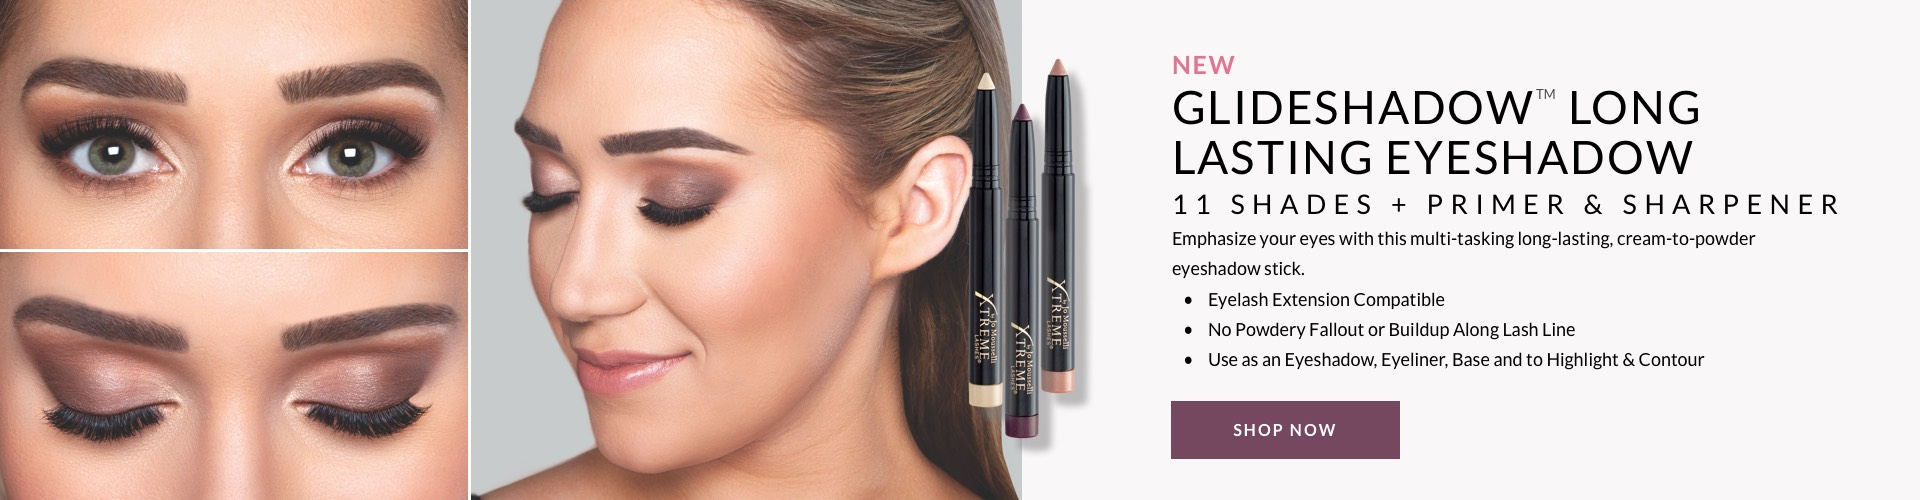 New Glideshadow Long Lasting Eyeshadow. Emphasize your eyes with this multi-tasking long-lasting, cream-to-powder eyeshadow stick.